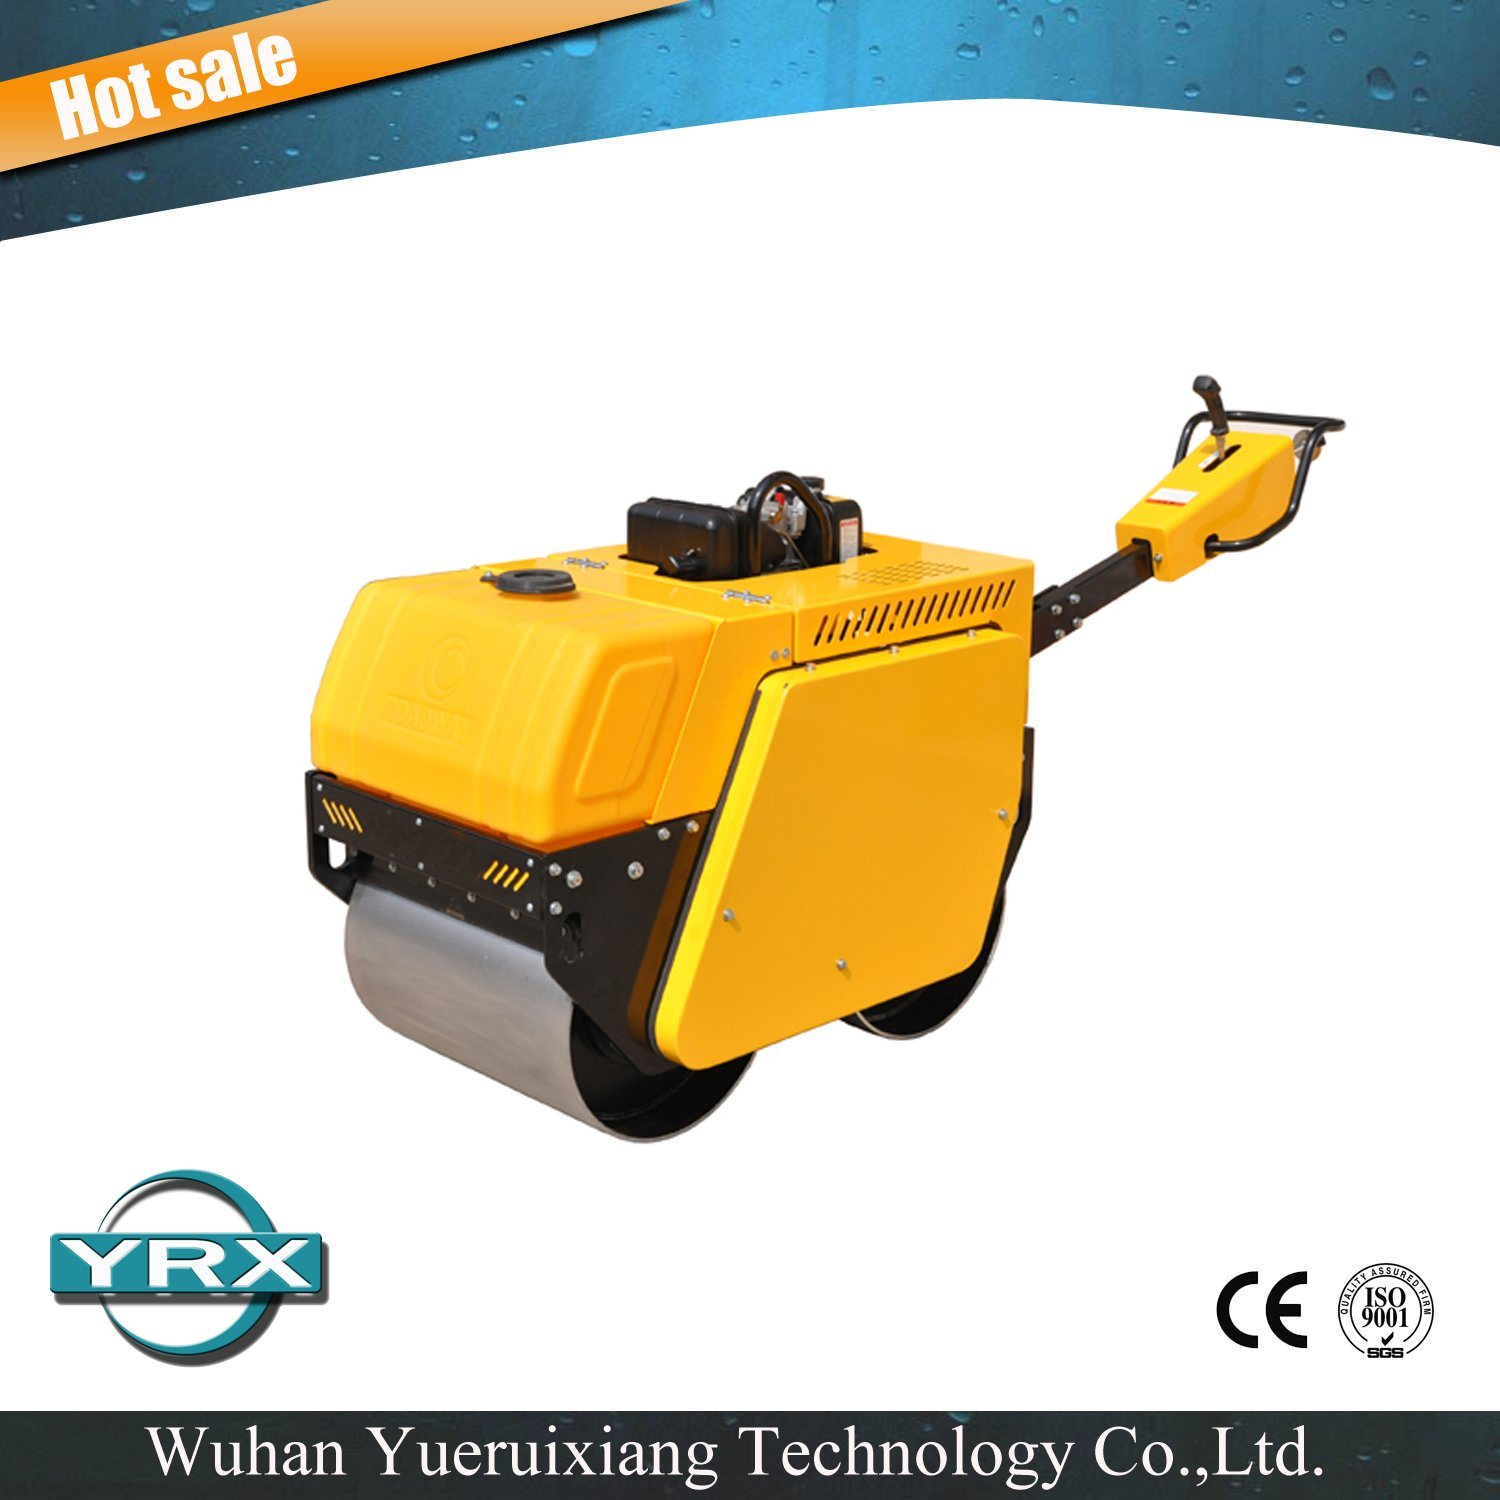 Ce Approved 583kg Double Drum Road Roller with Kipor Diesel Engine